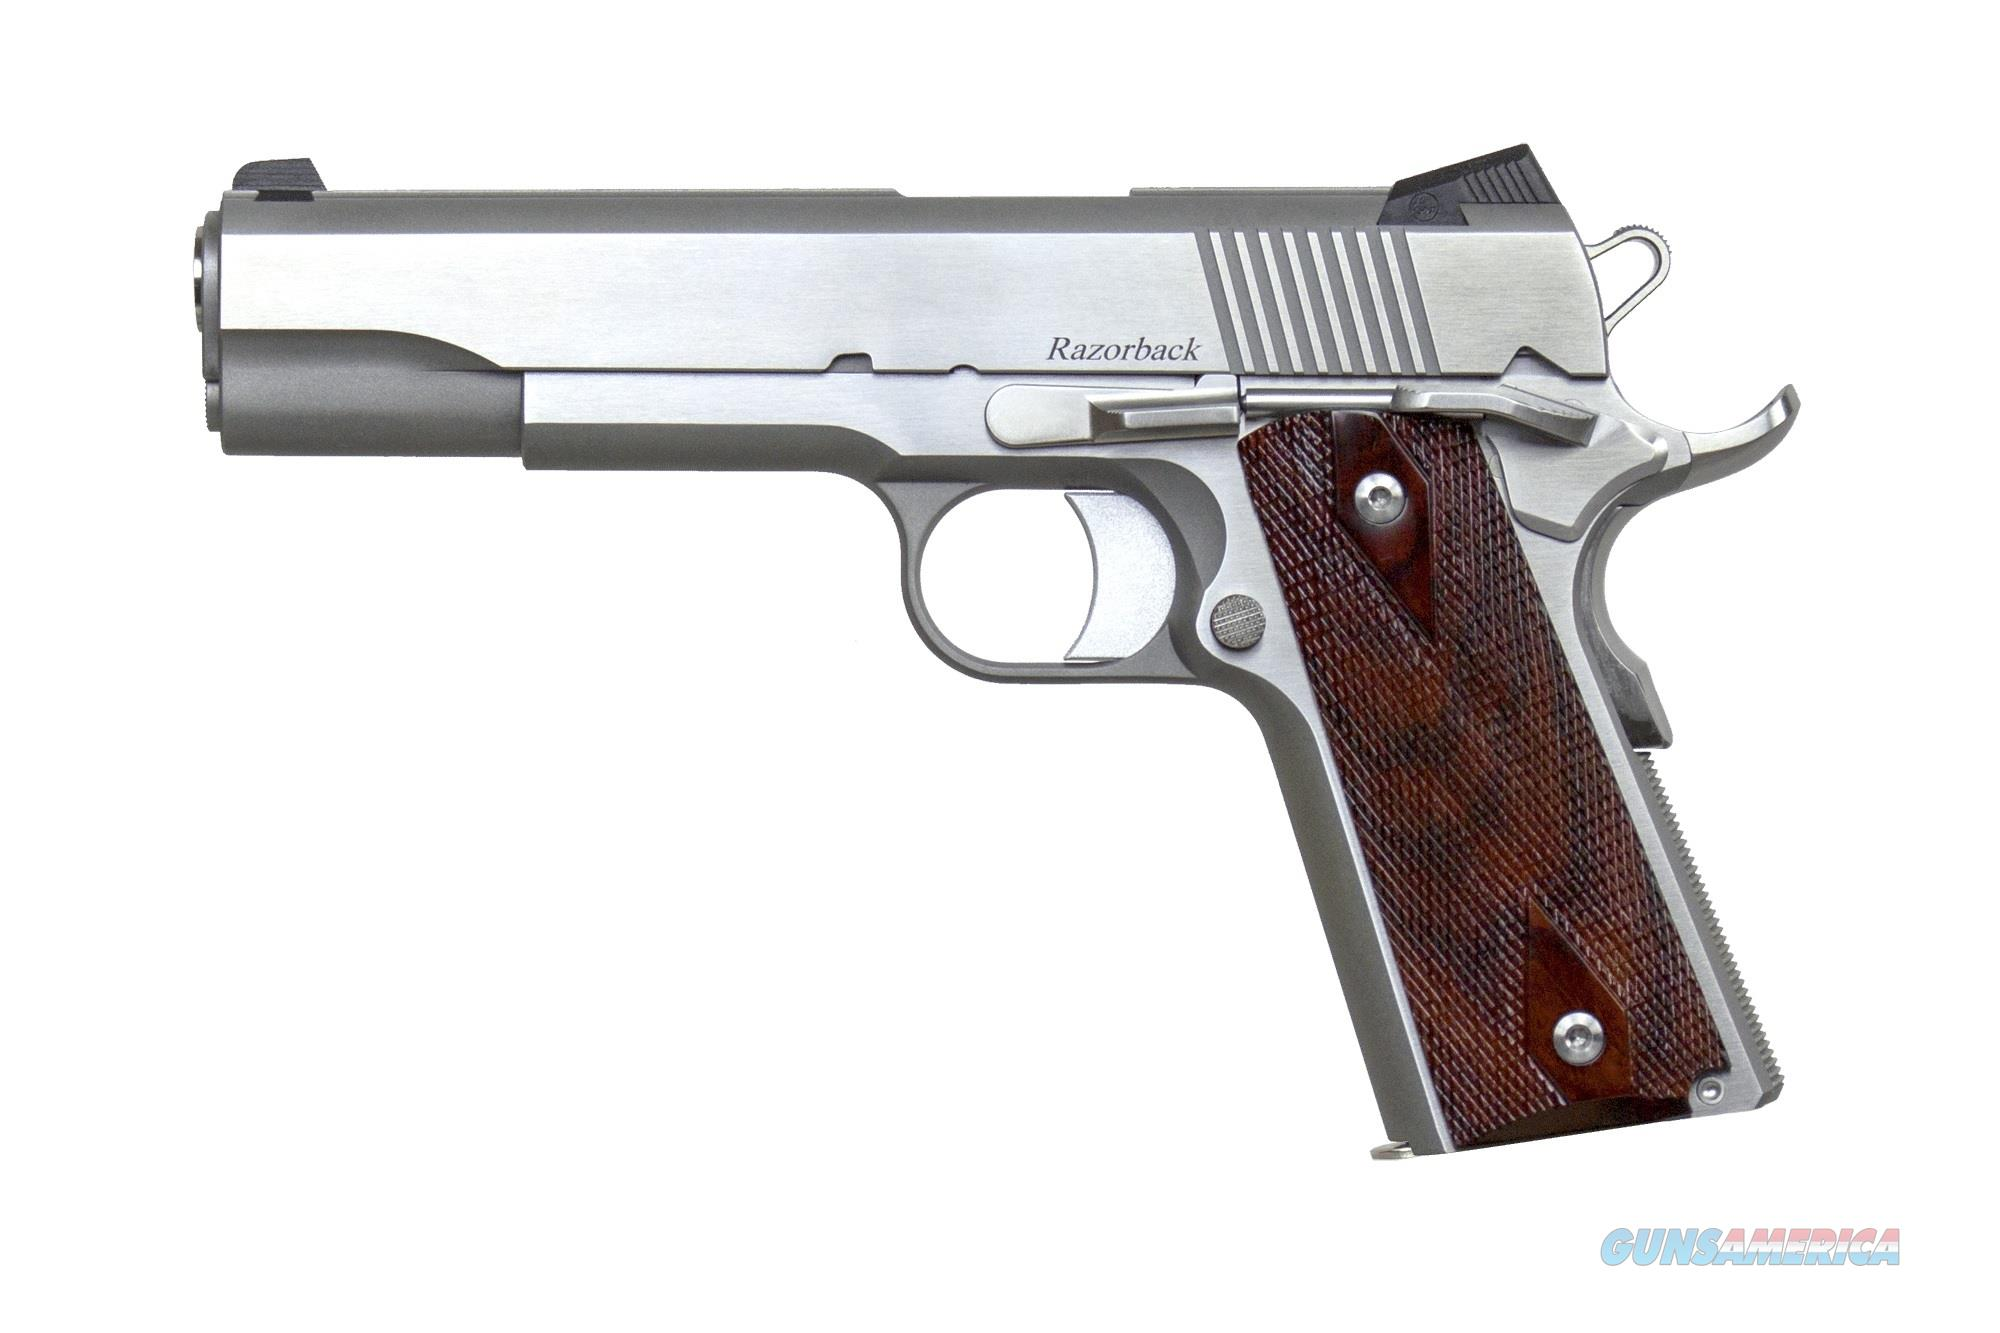 "CZ-USA Dan Wesson Razorback RZ-10 Stainless 10mm 5"" 01907   Guns > Pistols > Dan Wesson Pistols/Revolvers > 1911 Style"